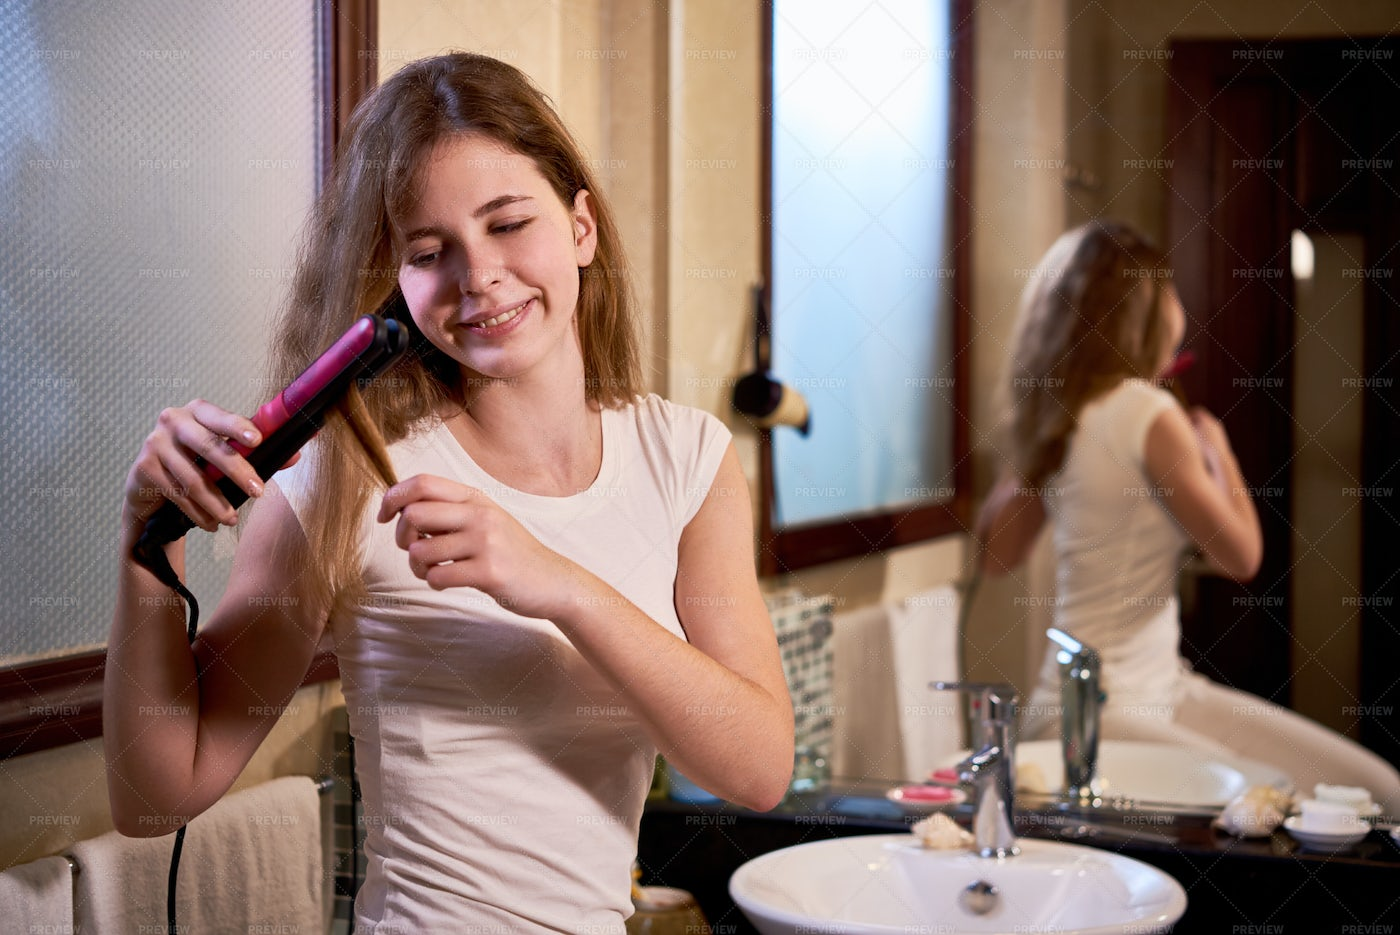 Woman Making A Hairstyle At Home: Stock Photos